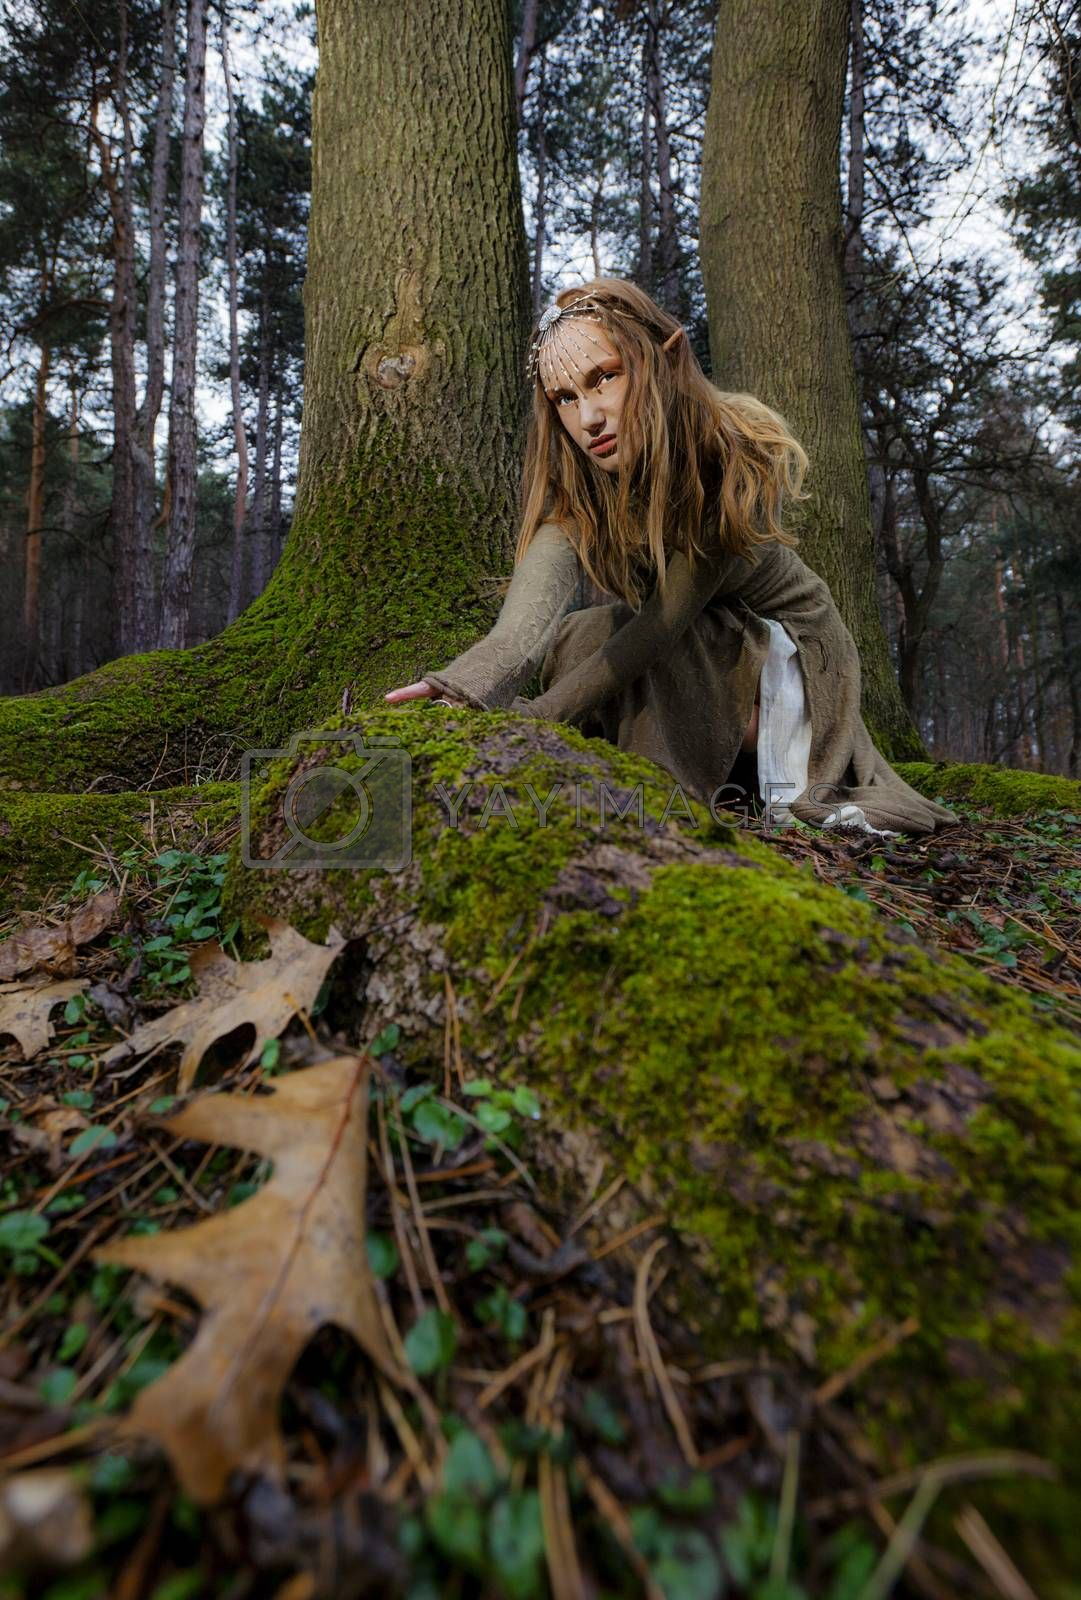 A portrait of a beautiful wild woman with elf ears  crawling in the forest.